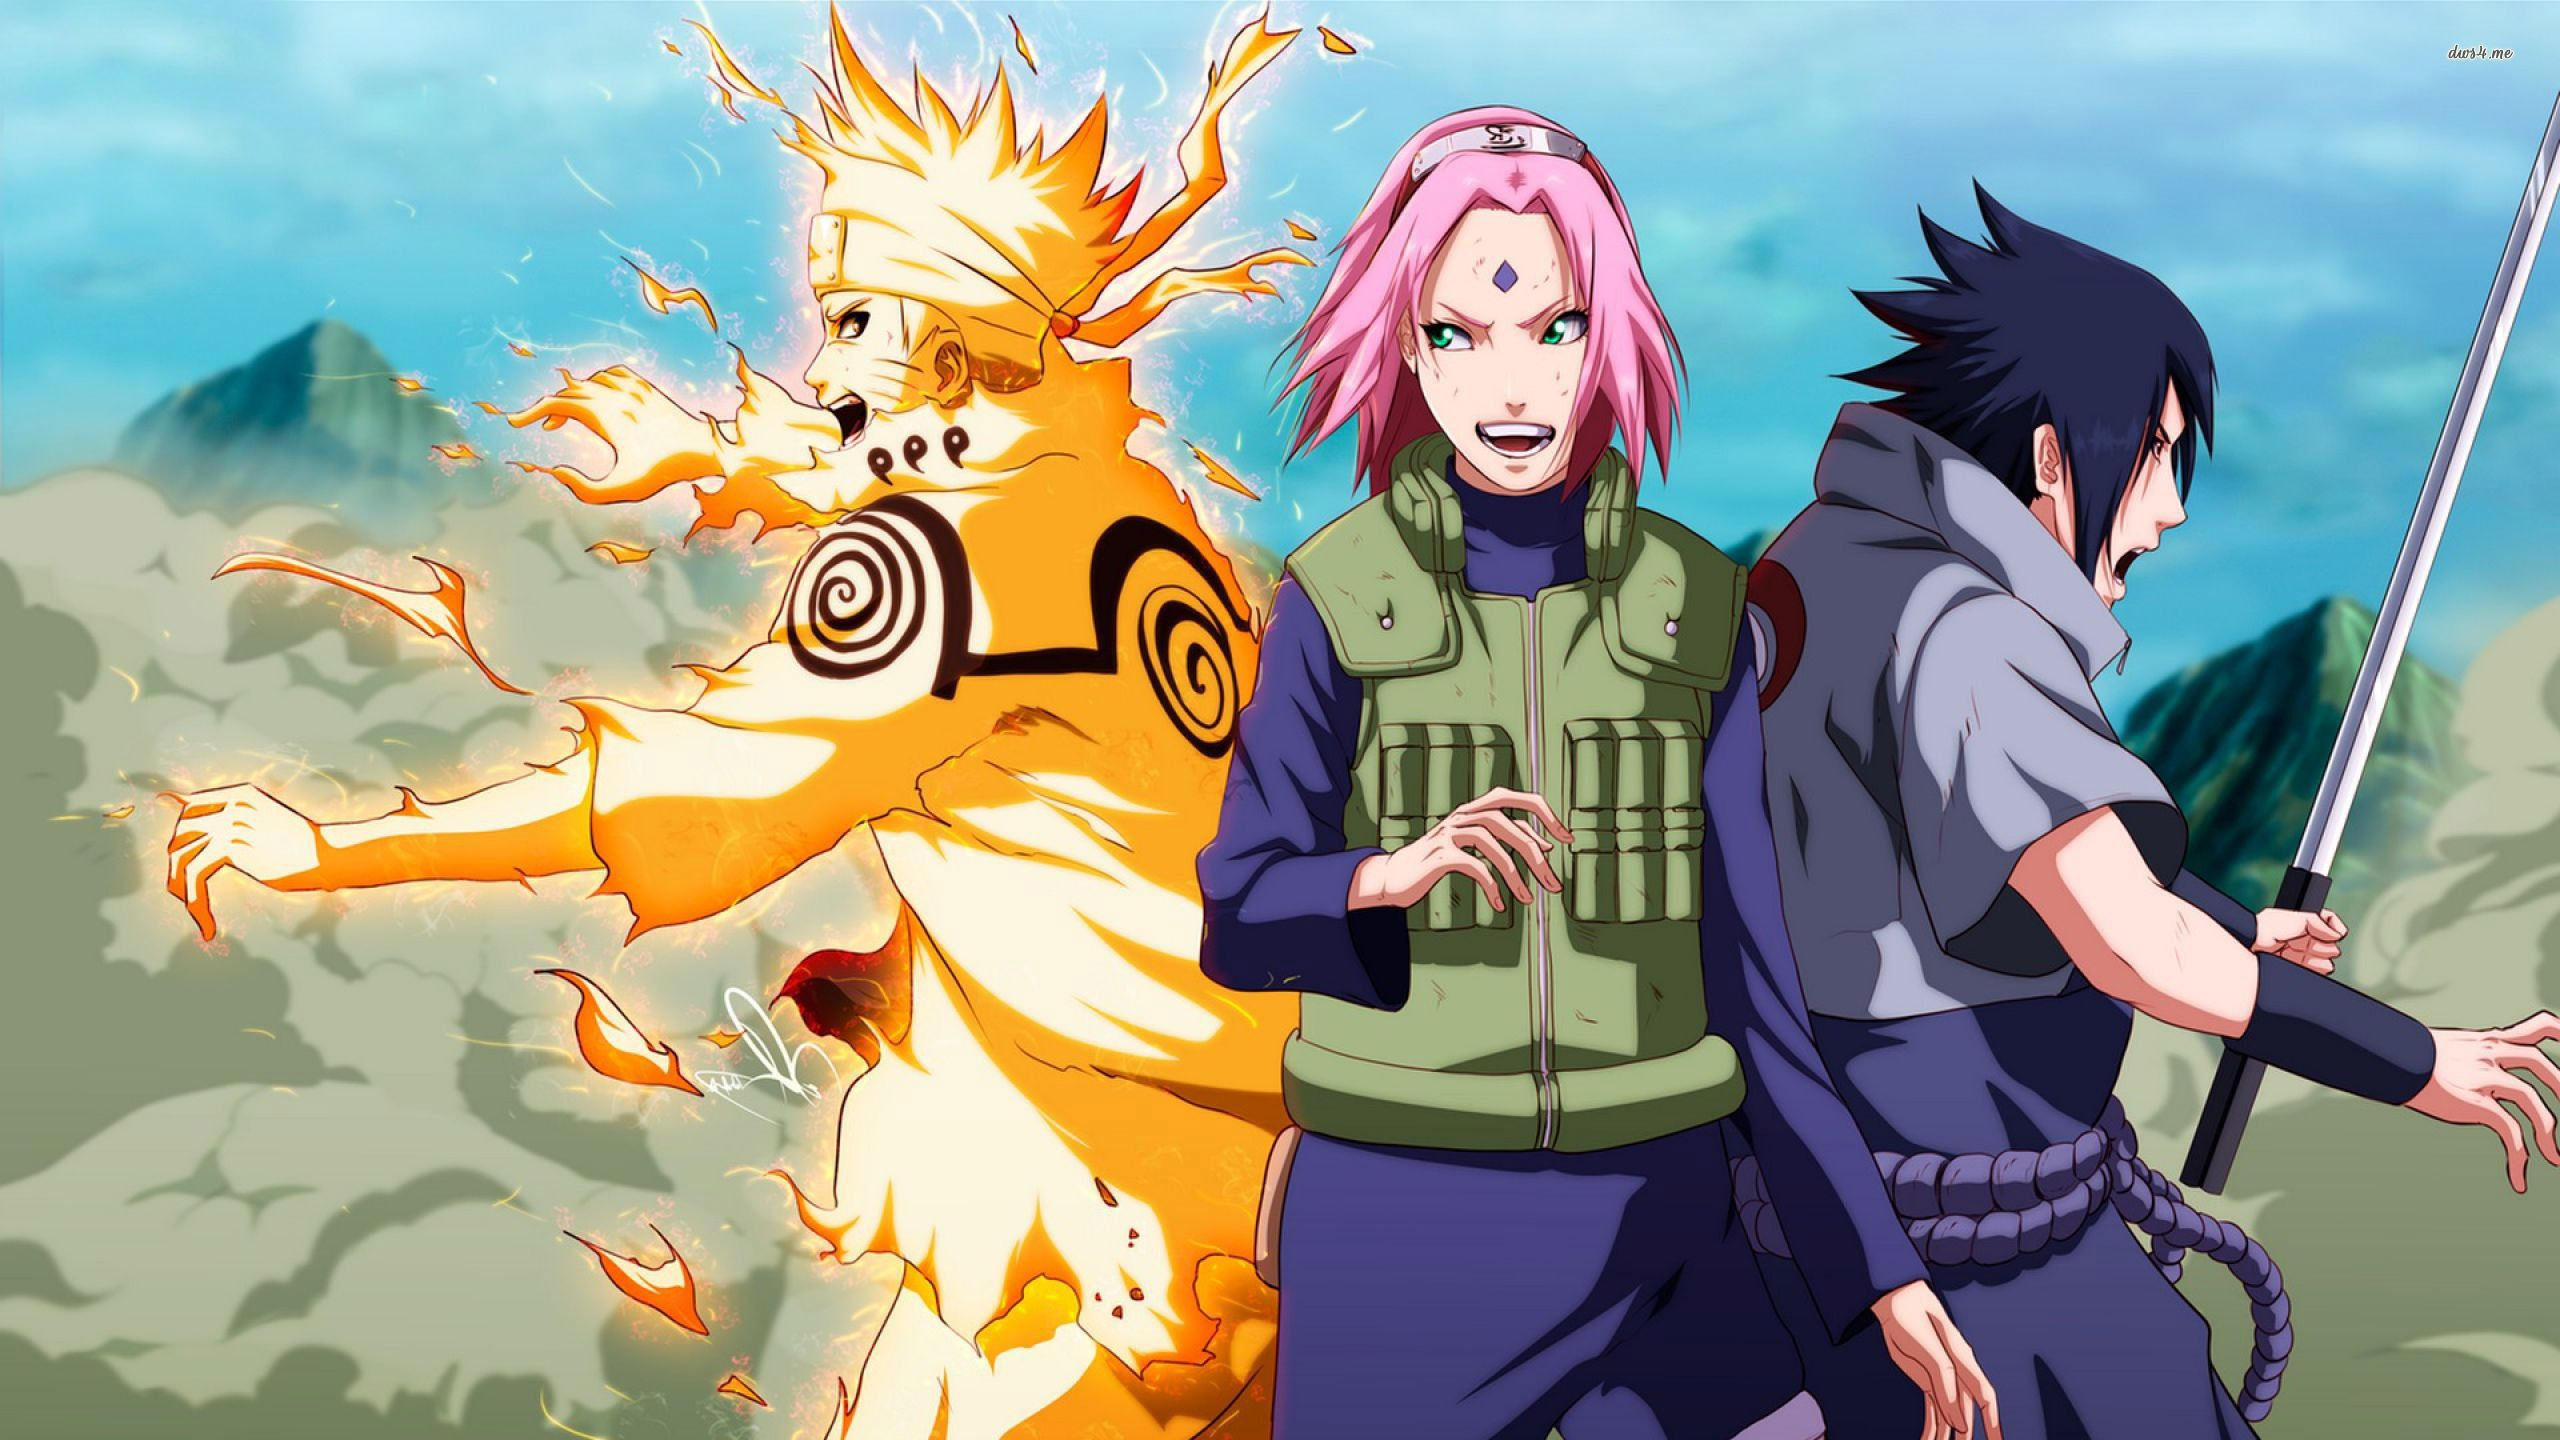 Naruto Shippuden Wallpaper Naruto Shippuden Hd Wallpaper